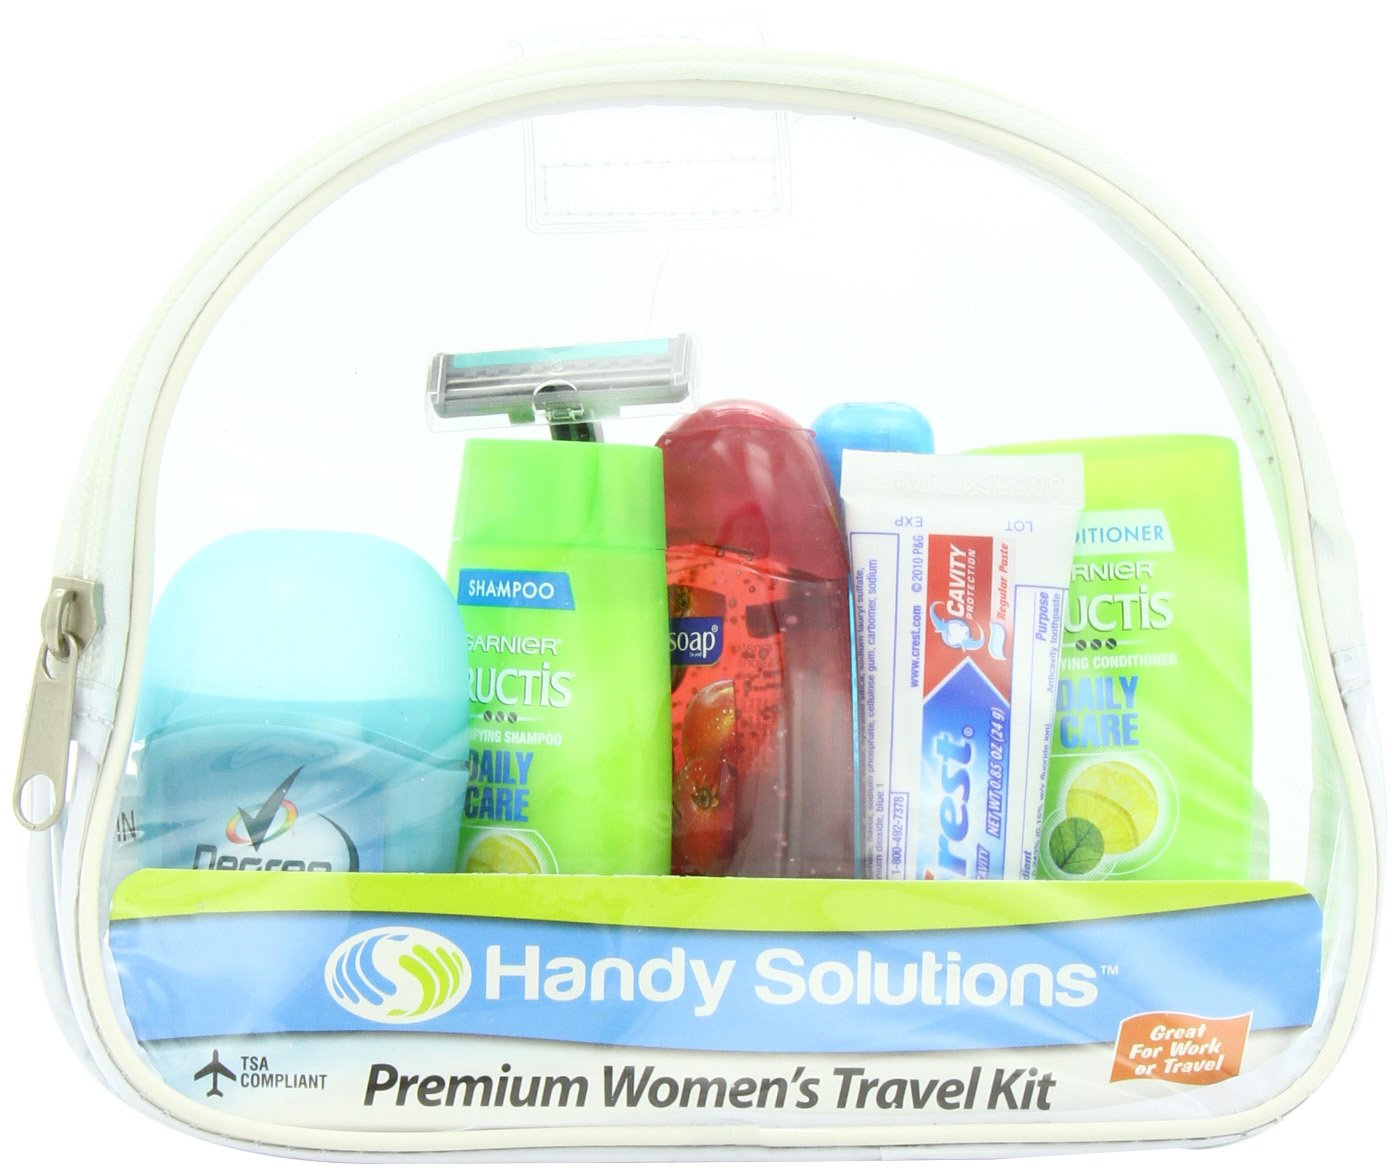 Handy Solutions Premium Women's Travel Kit